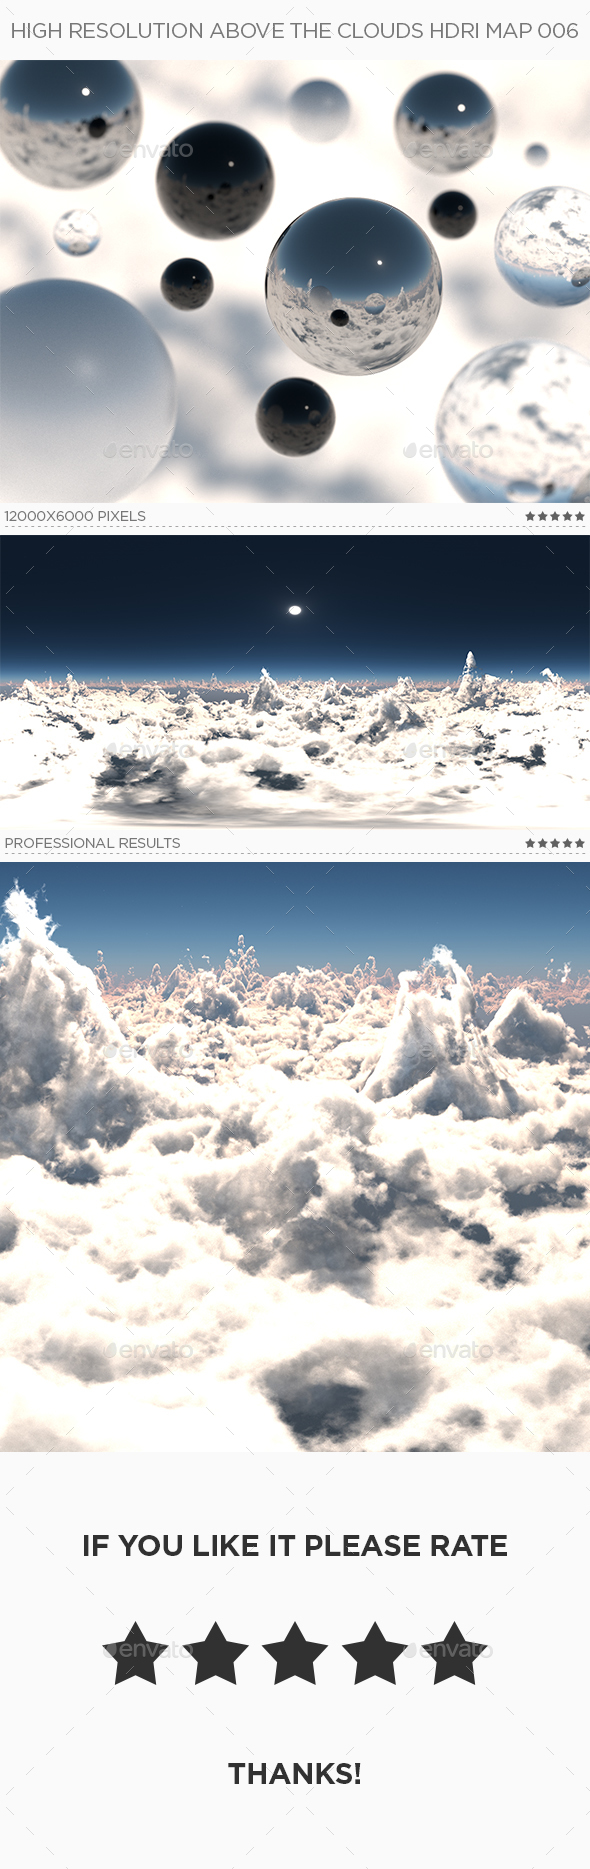 High Resolution Above The Clouds HDRi Map 006